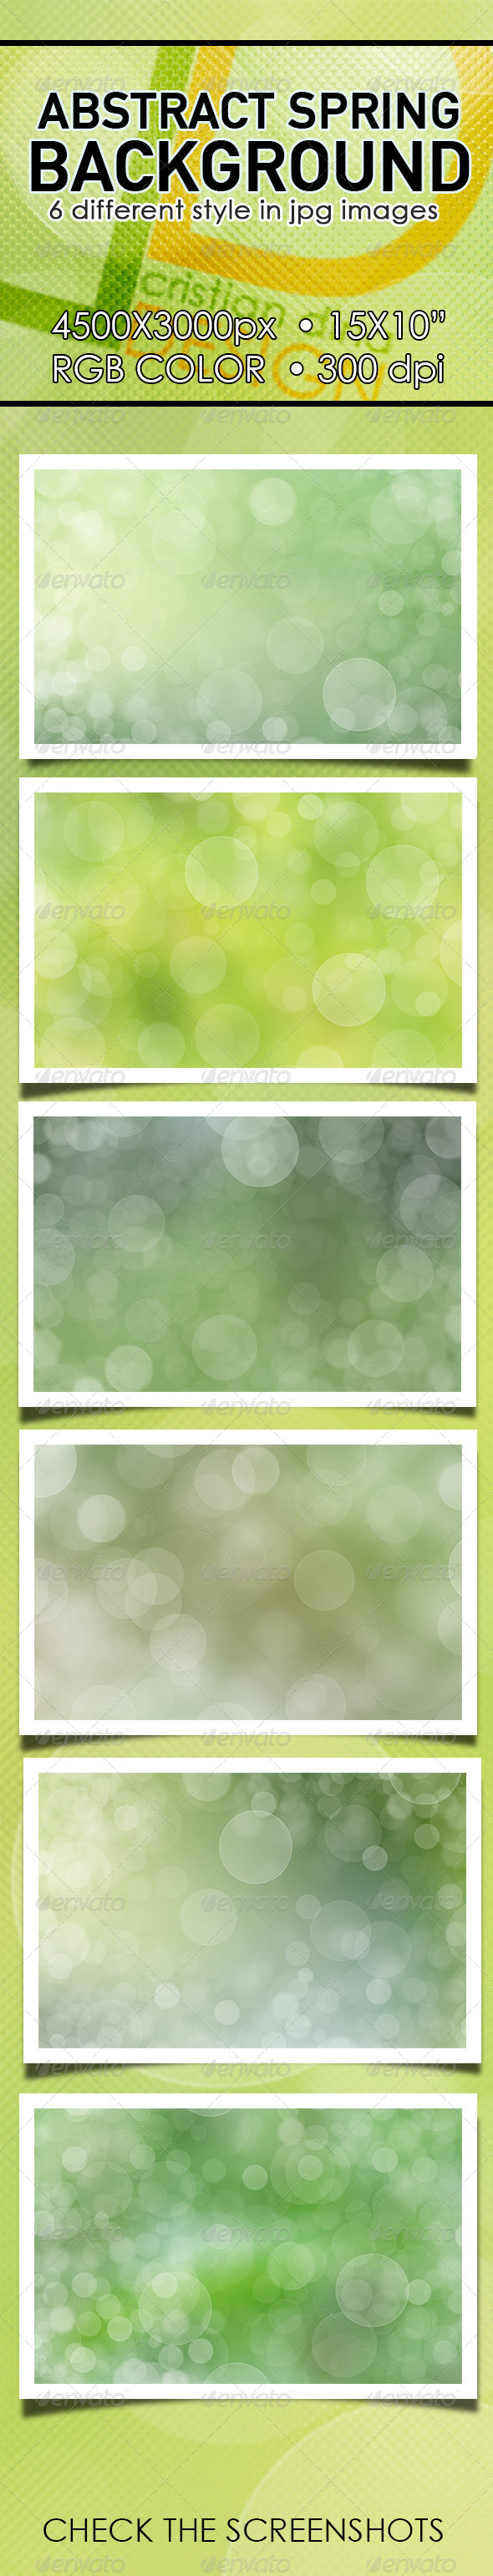 Abstract Spring Background Pack I. - Backgrounds Graphics